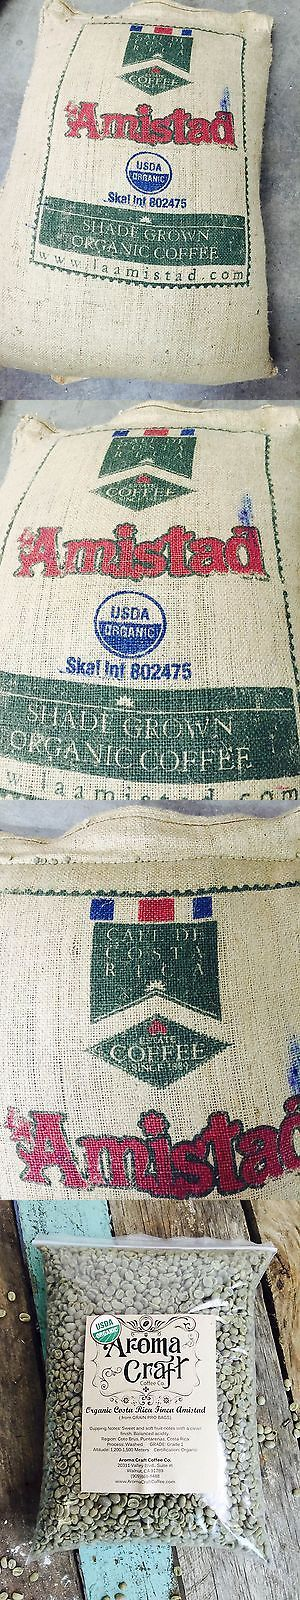 Coffee Beans 38179: Organic Costa Rica Finca Amistad Unroasted Green Coffee Beans Washed Up To 20 Lb -> BUY IT NOW ONLY: $127.99 on eBay!